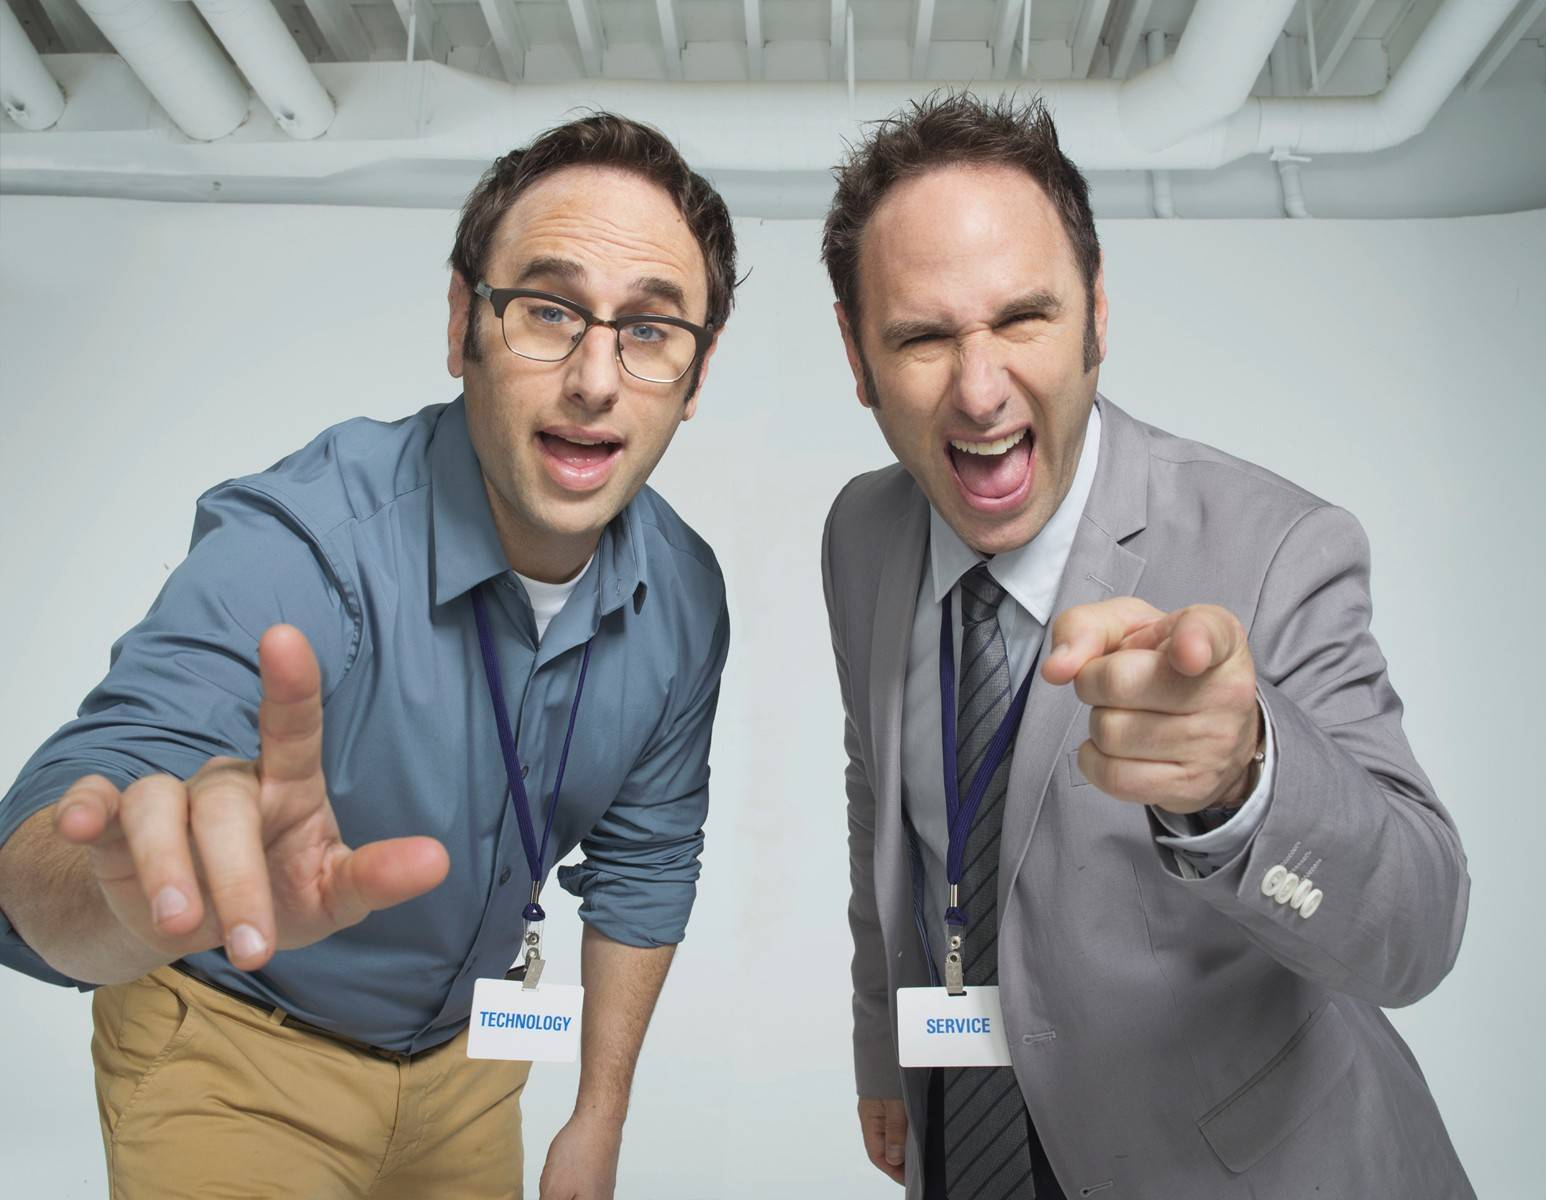 The Sklar Brothers perform at the Improv Comedy Showcase in Schaumburg.